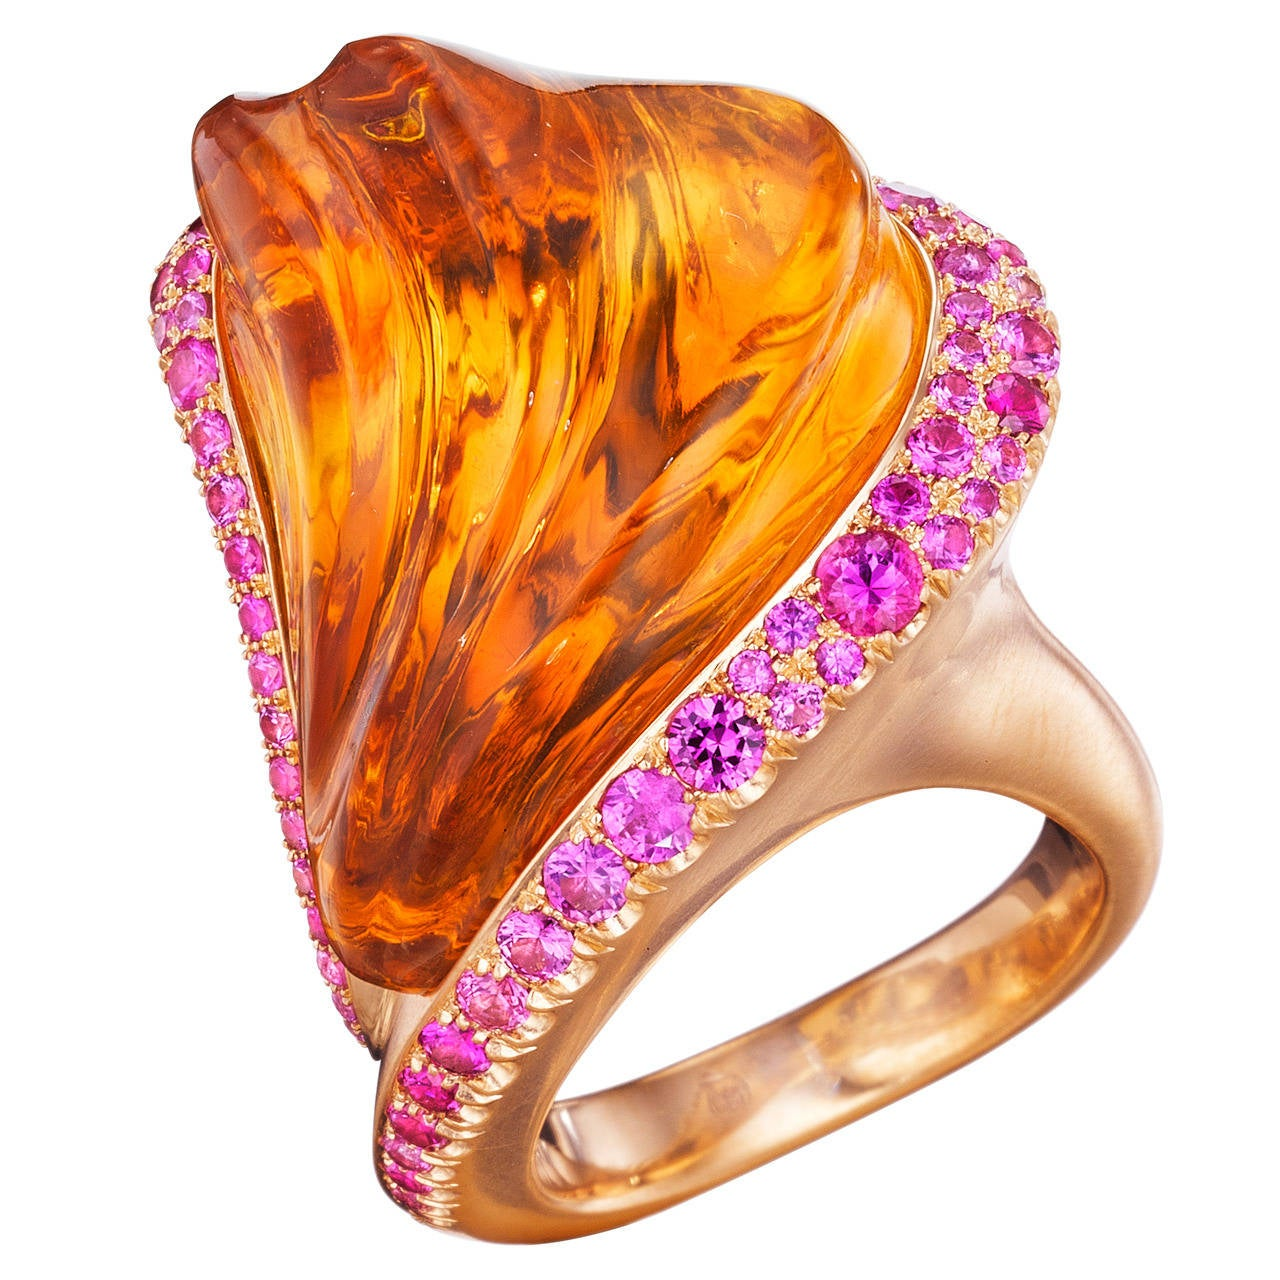 Naomi Sarna Hand-Carved Citrine Pink Sapphire Gold Ring For Sale